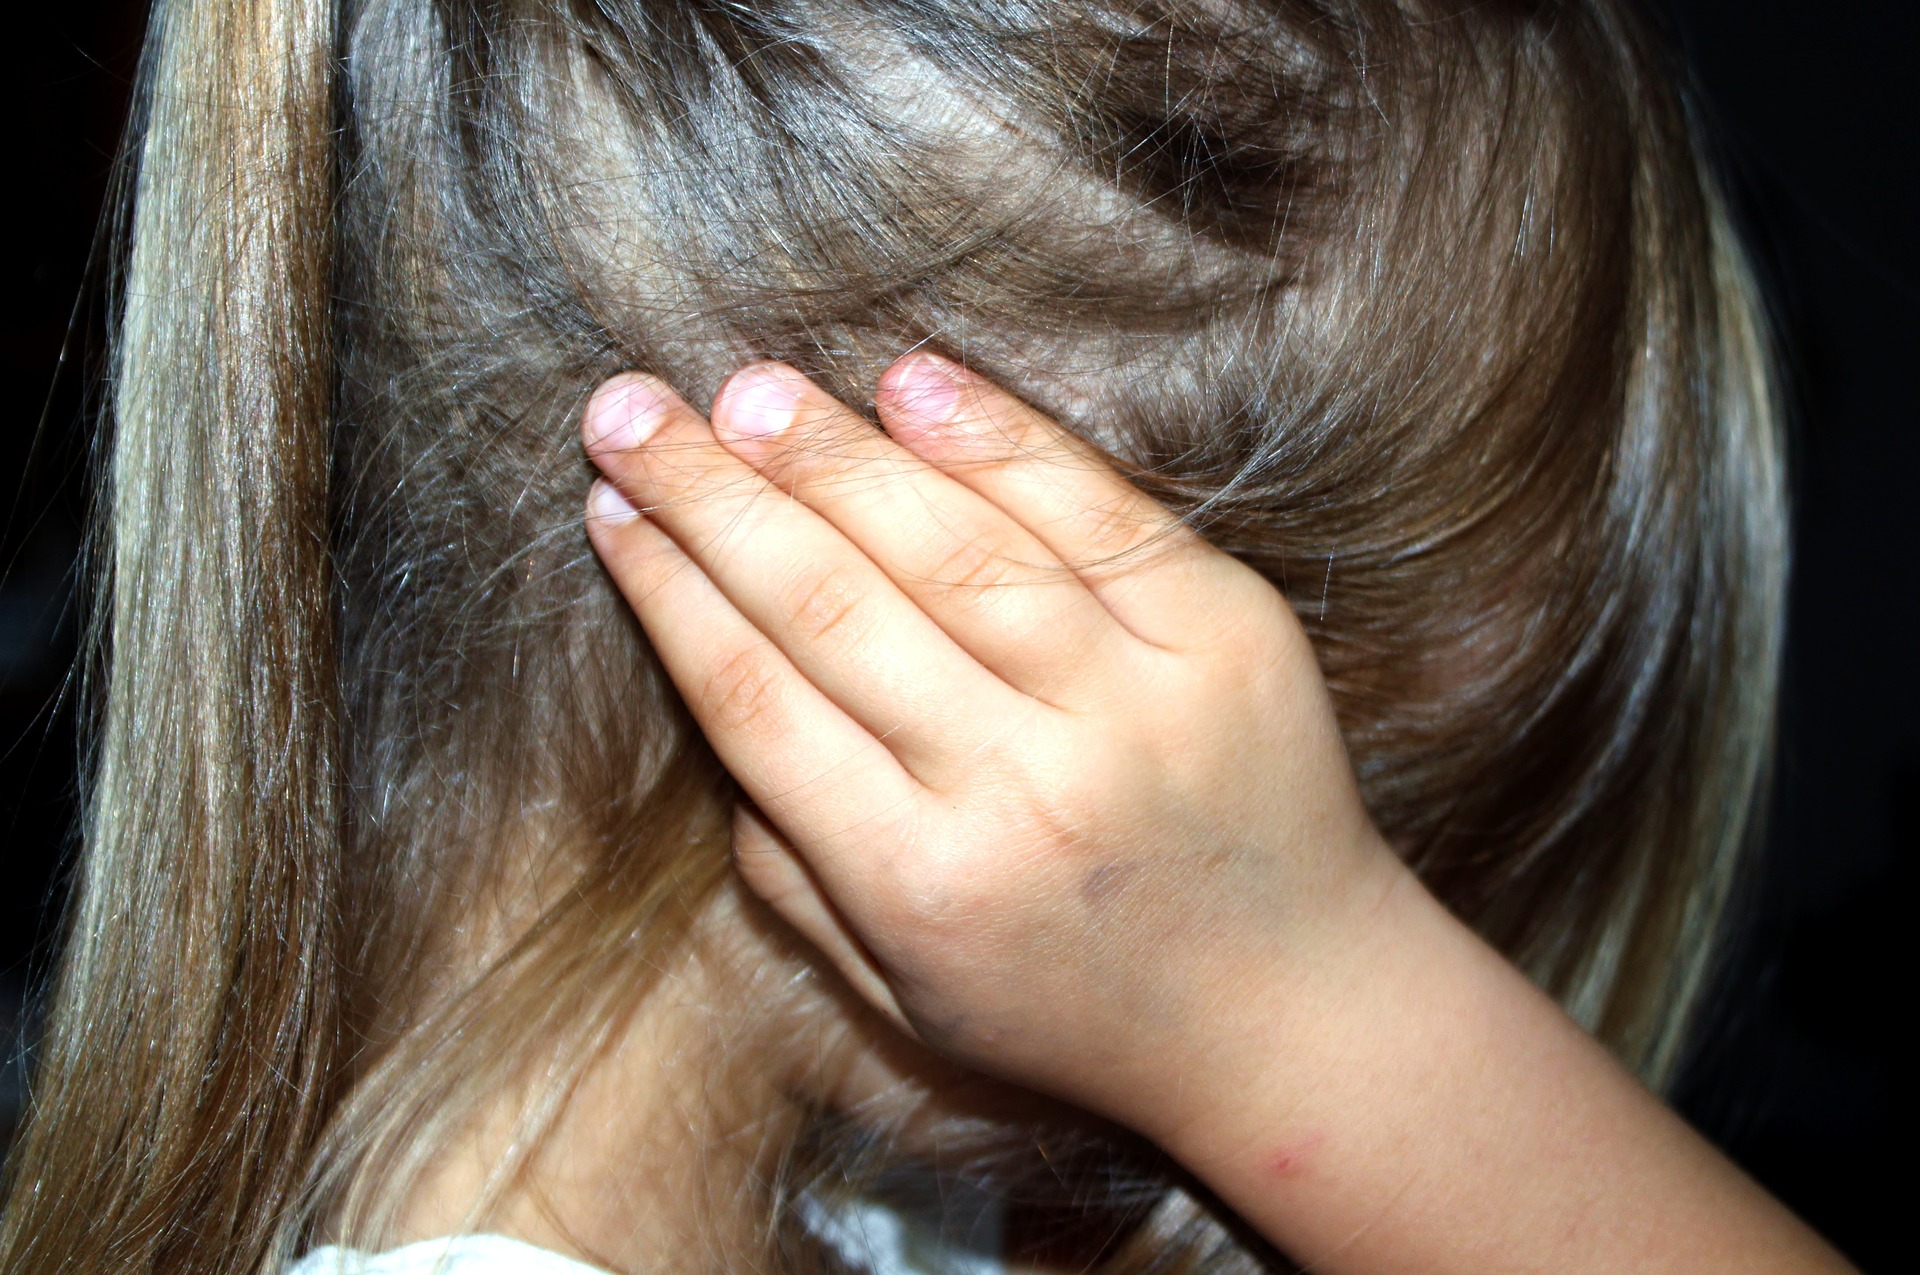 symptoms of middle ear infection